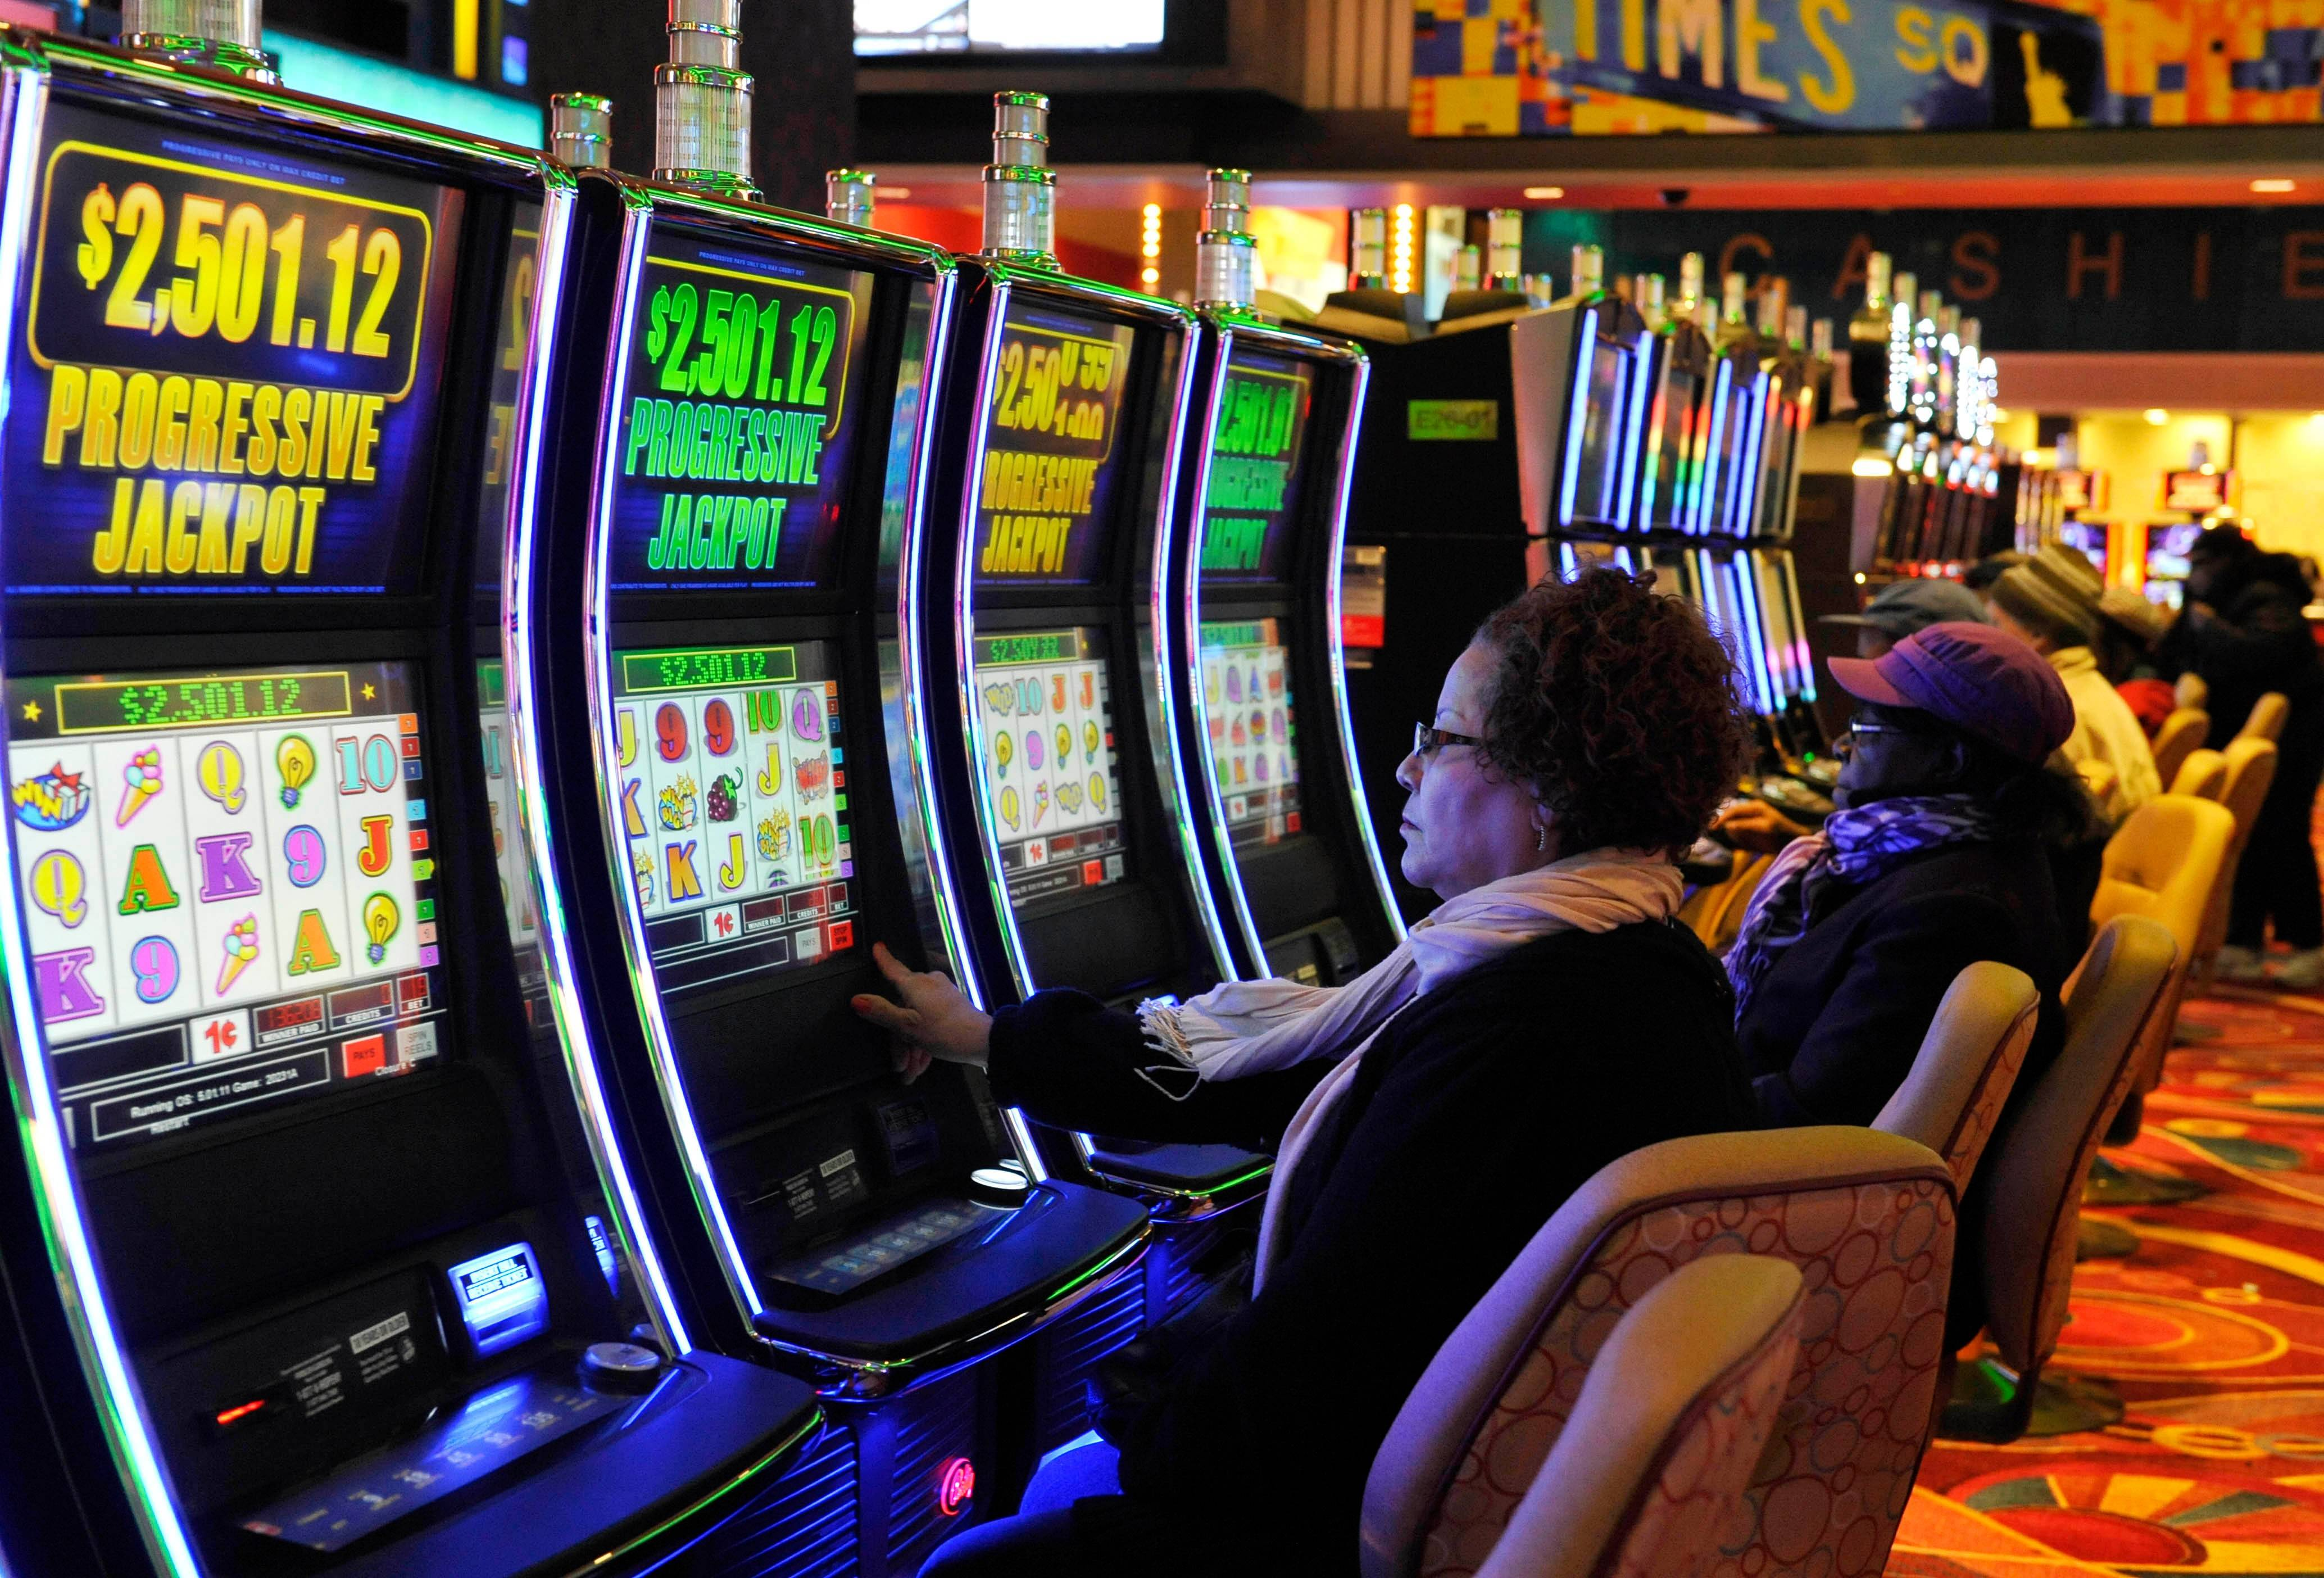 New gambling plan: Give Arlington half the slots